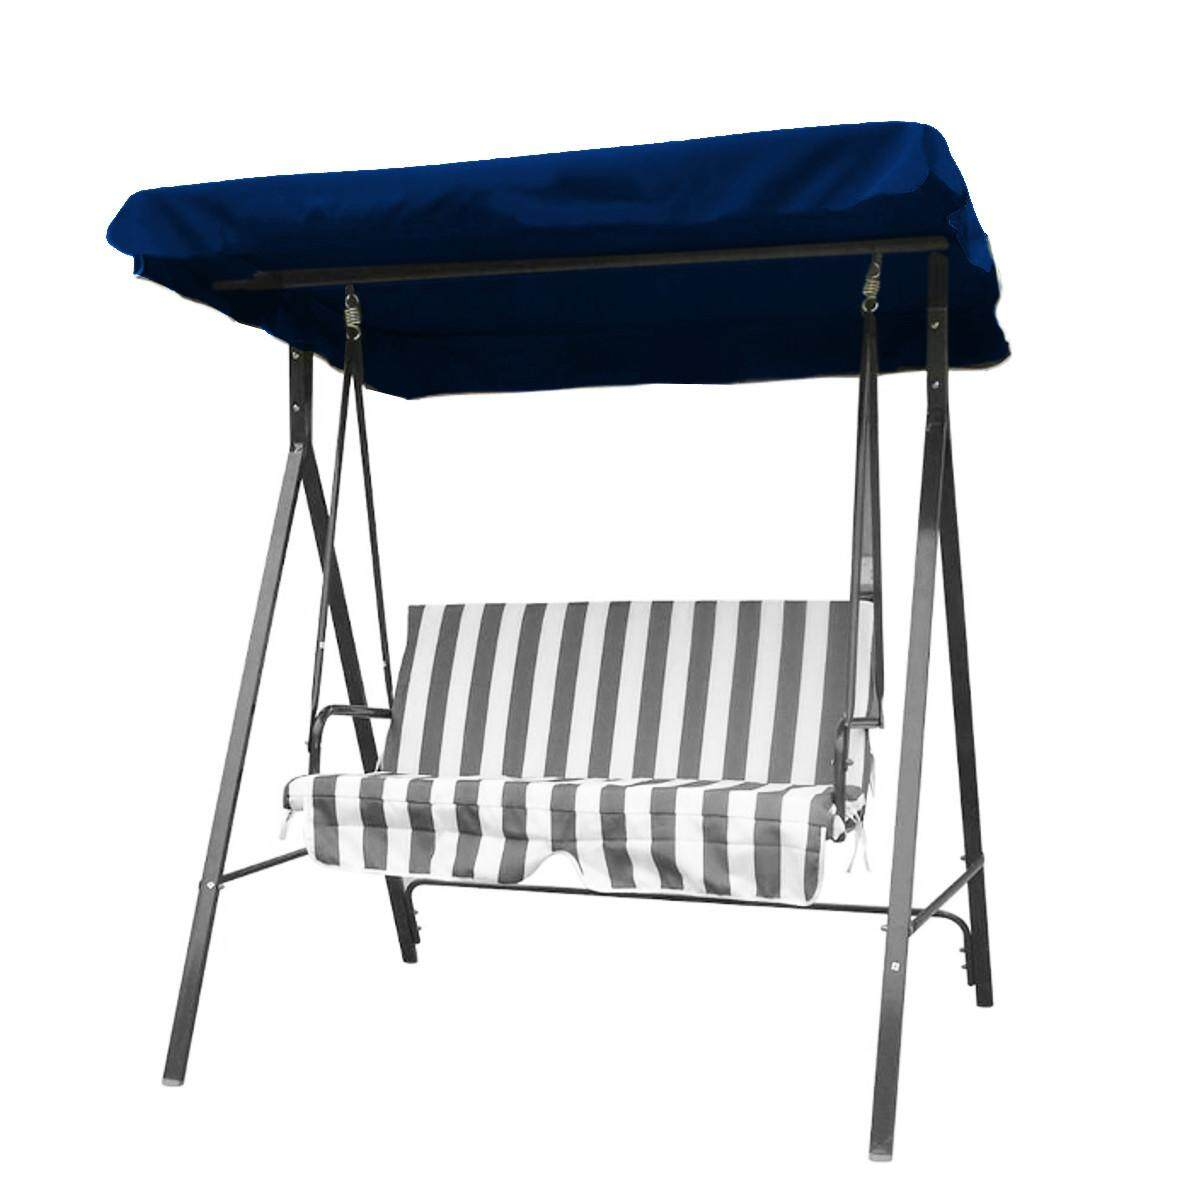 Hình ảnh Replacement Canopy for Swing Seat Garden Hammock 3 Seater Sizes Spare Cover